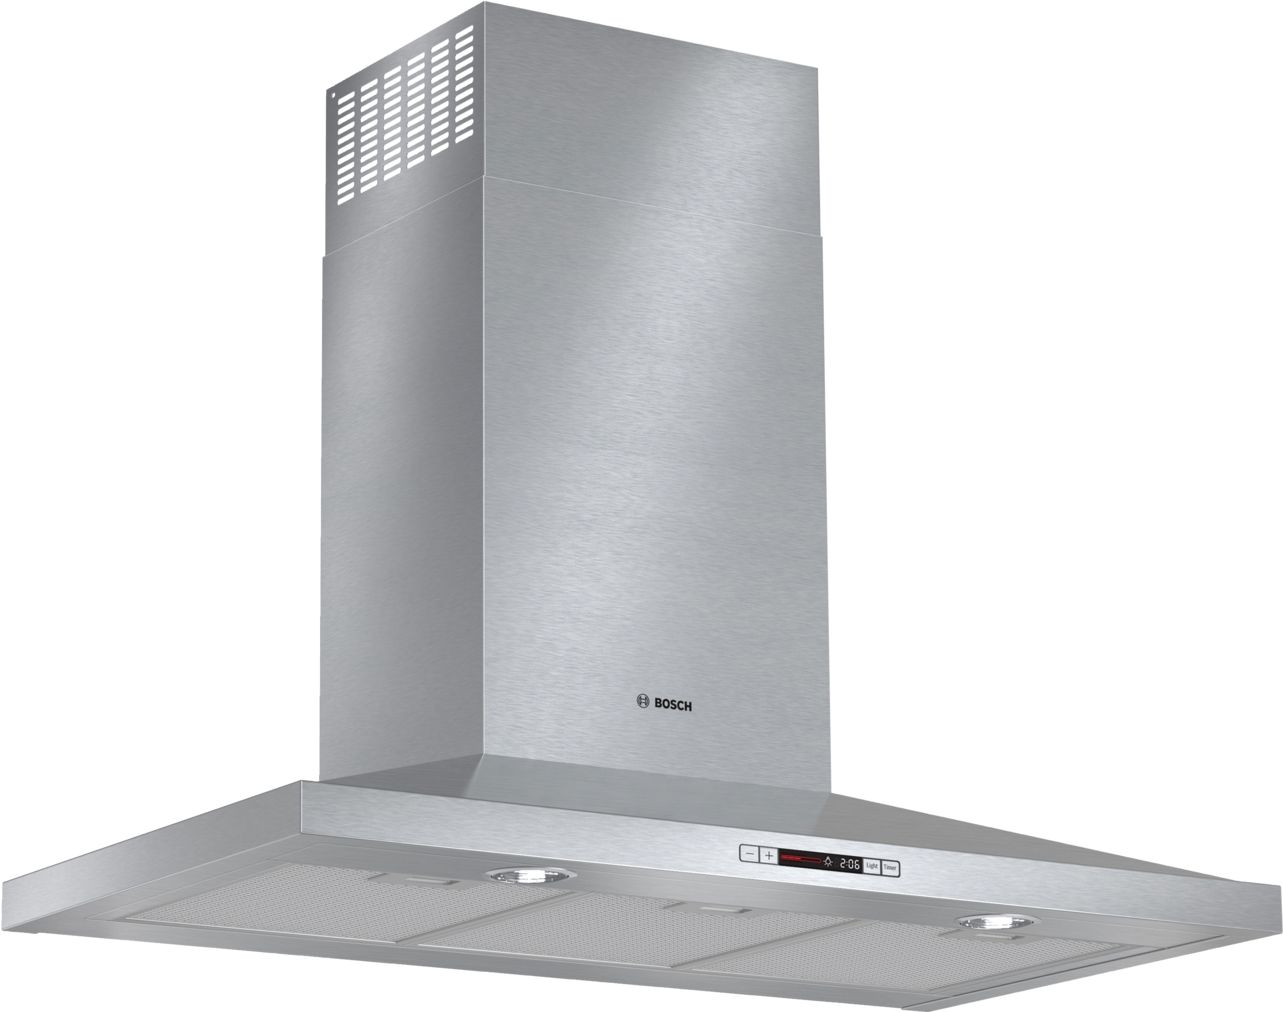 "Bosch 300 Series36"" Pyramid Canopy Chimney Hood, 600 CFM, HCP36651UC, Stainless Steel"